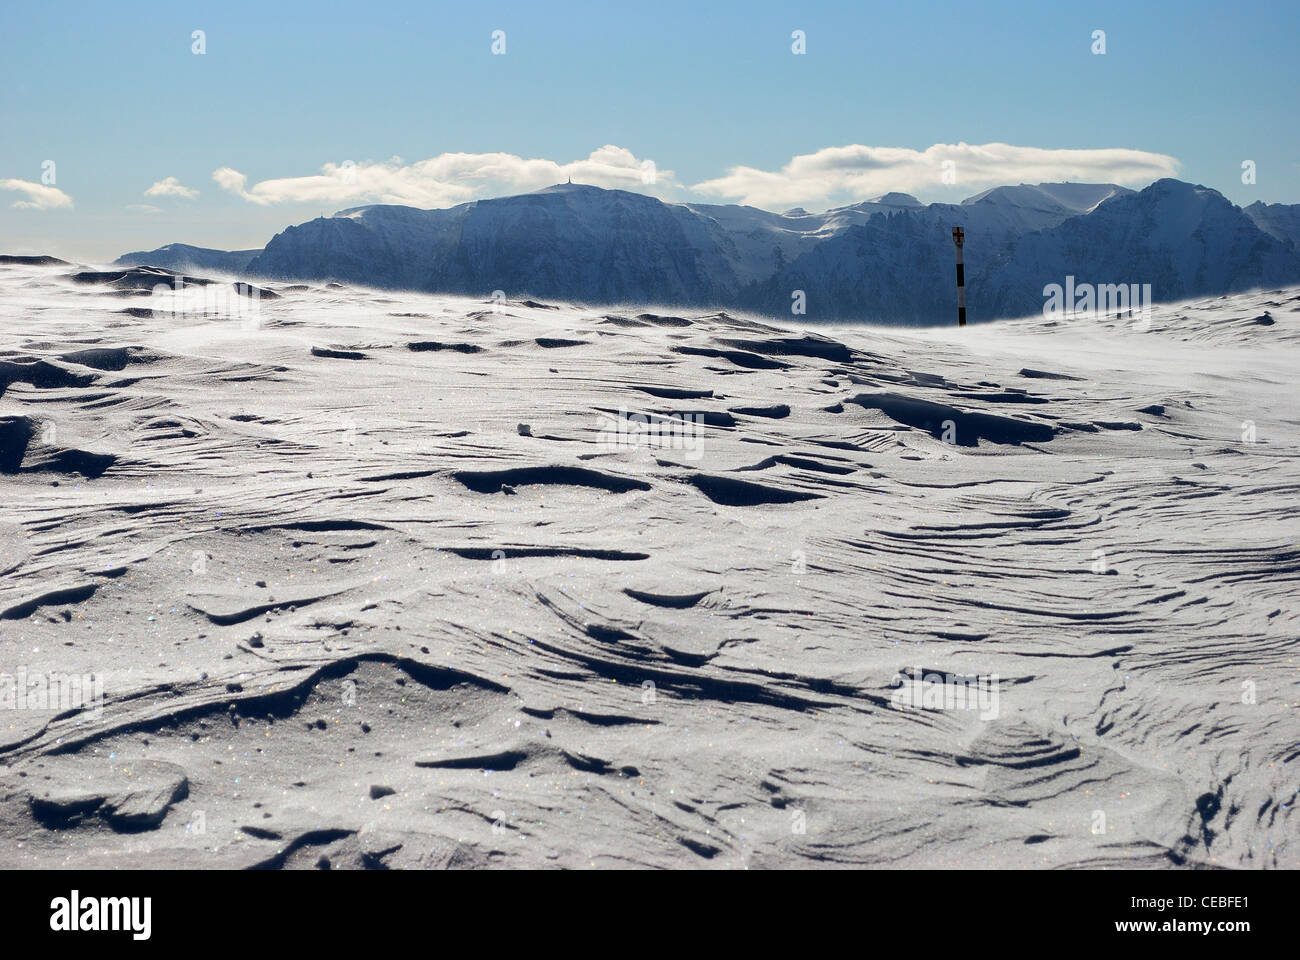 Snowy landscape with mountains in the background with some clouds. - Stock Image